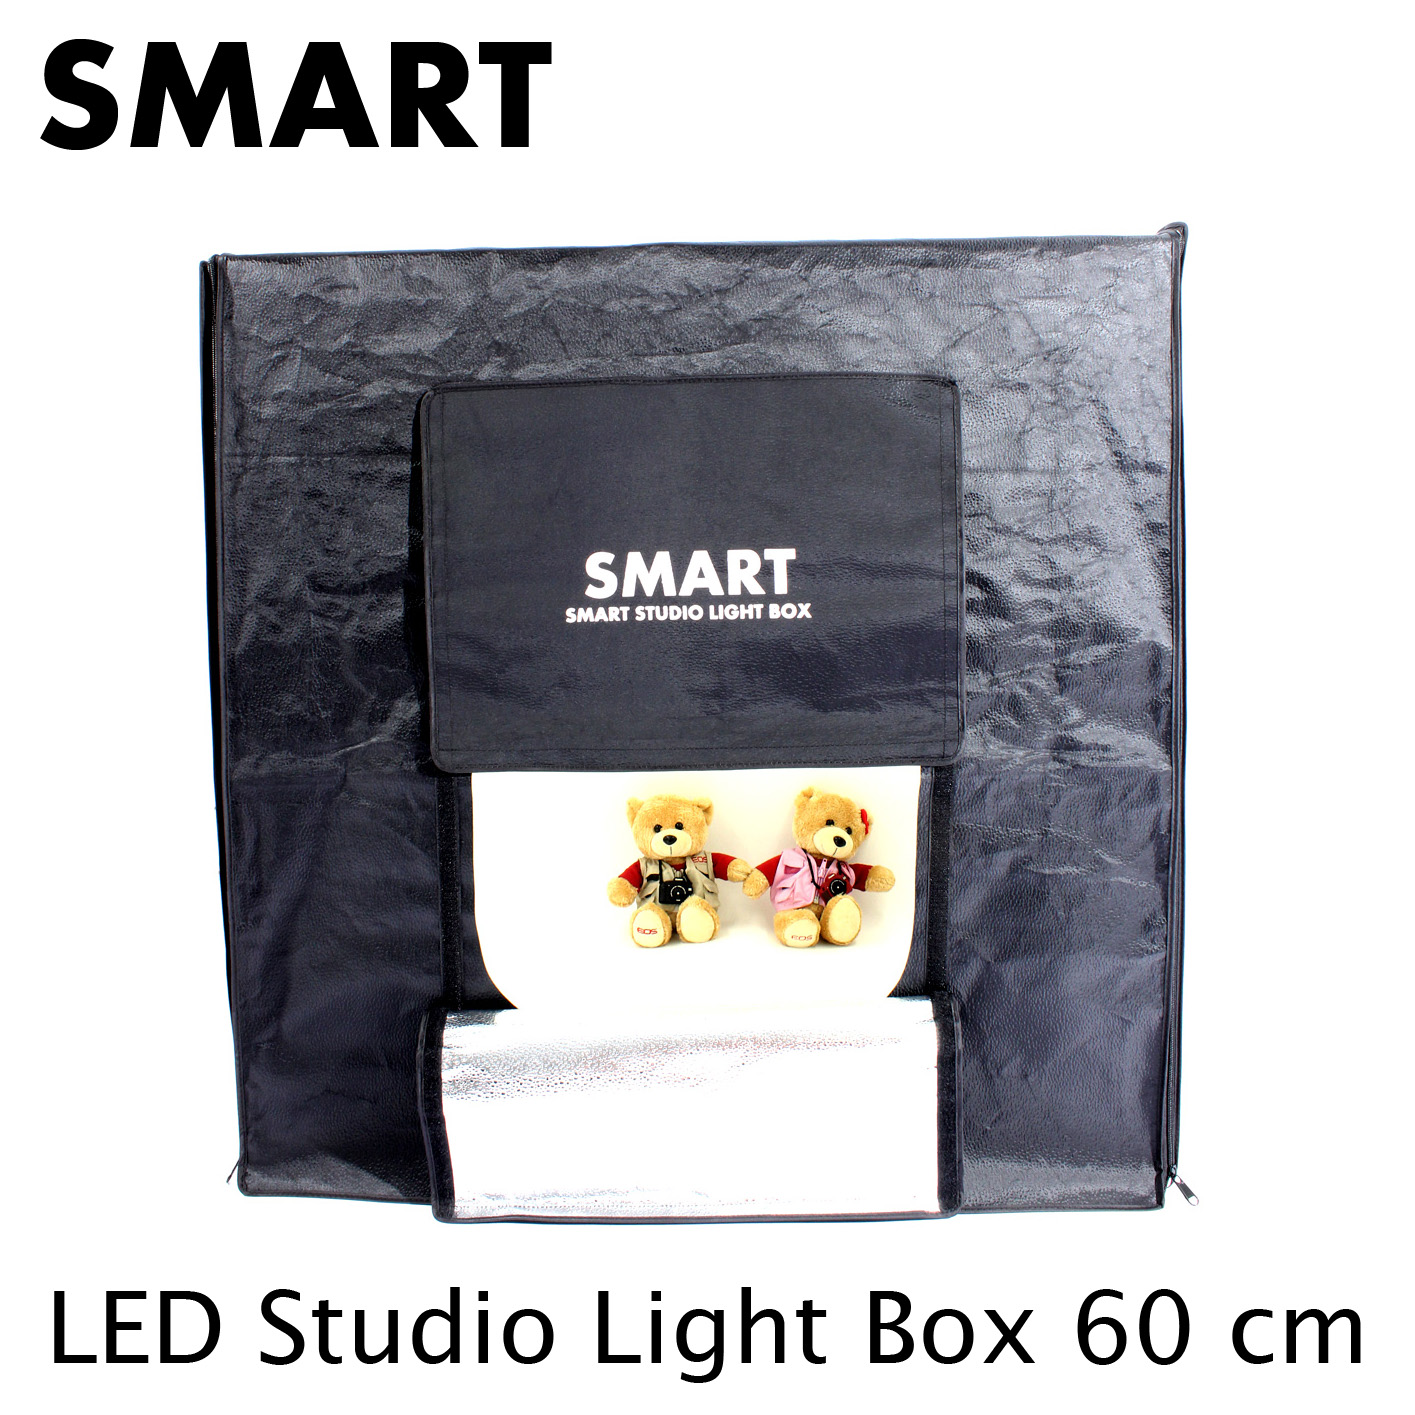 new SMART 60cm LED with Remote Dimmer Studio Light Box